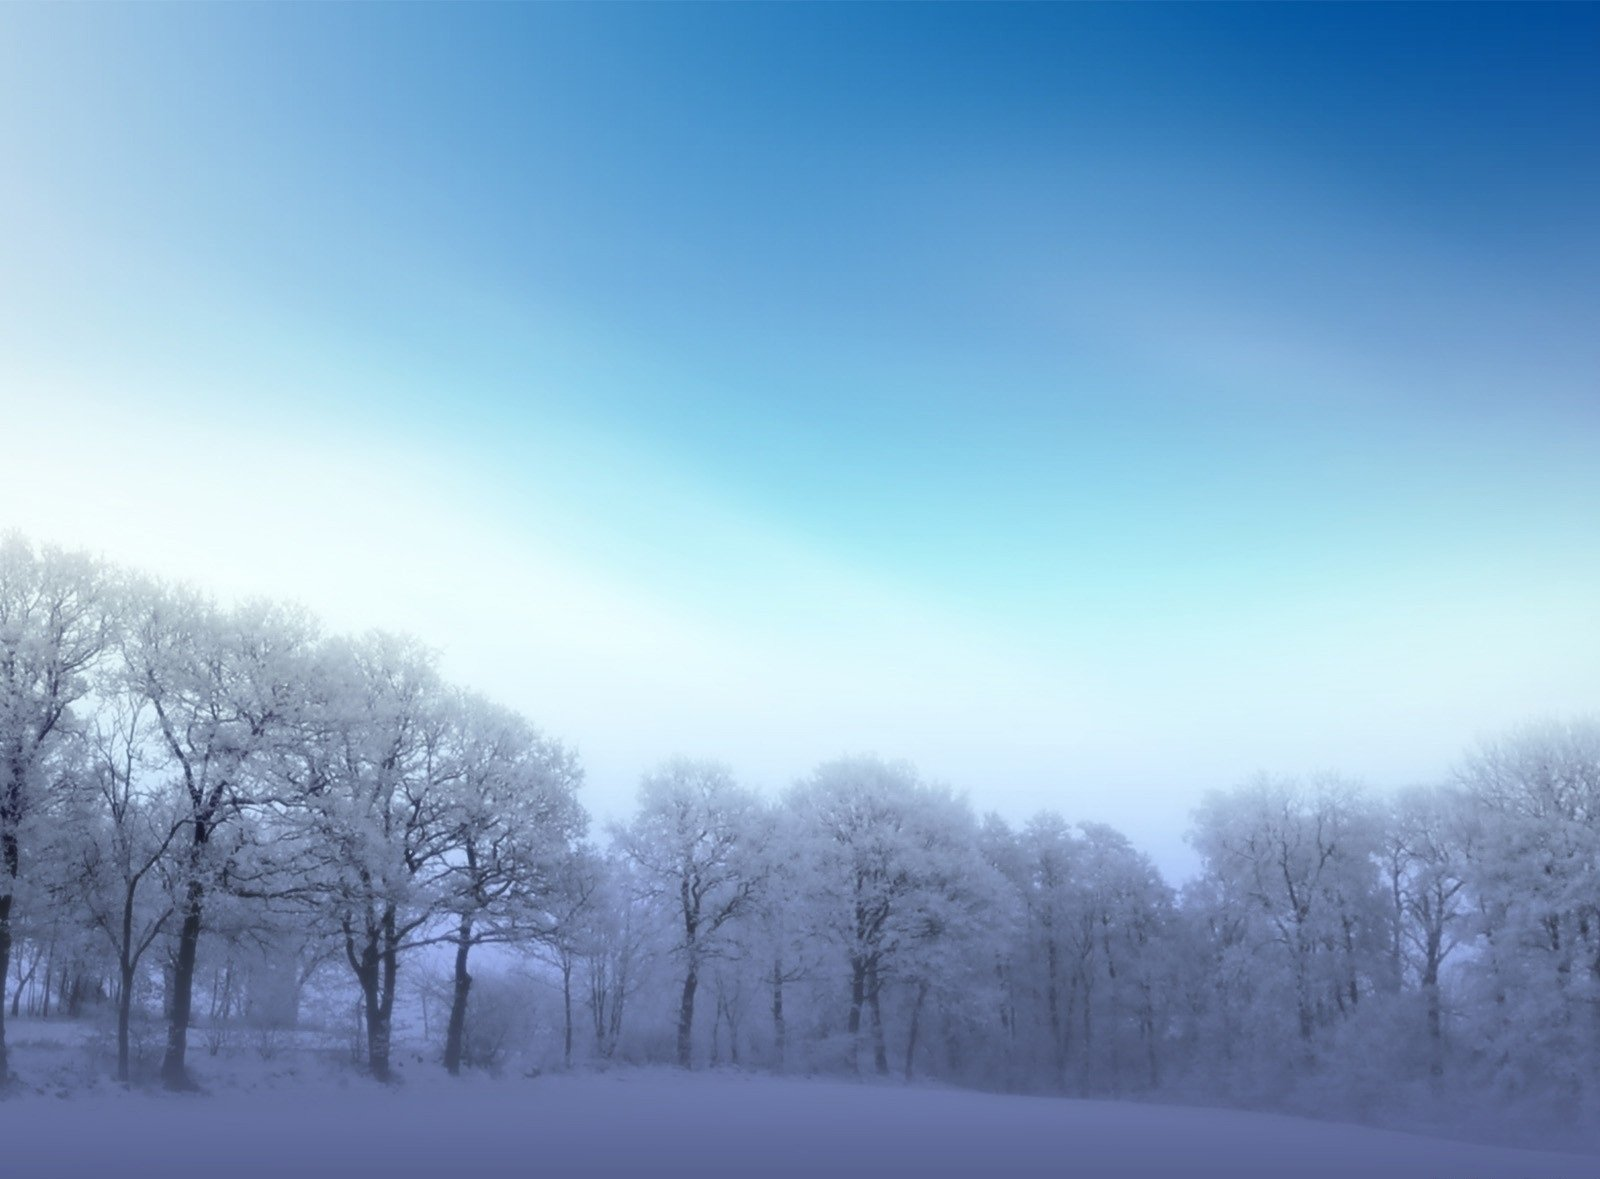 Earth - Winter  Snow Frozen Nature Tree Wallpaper